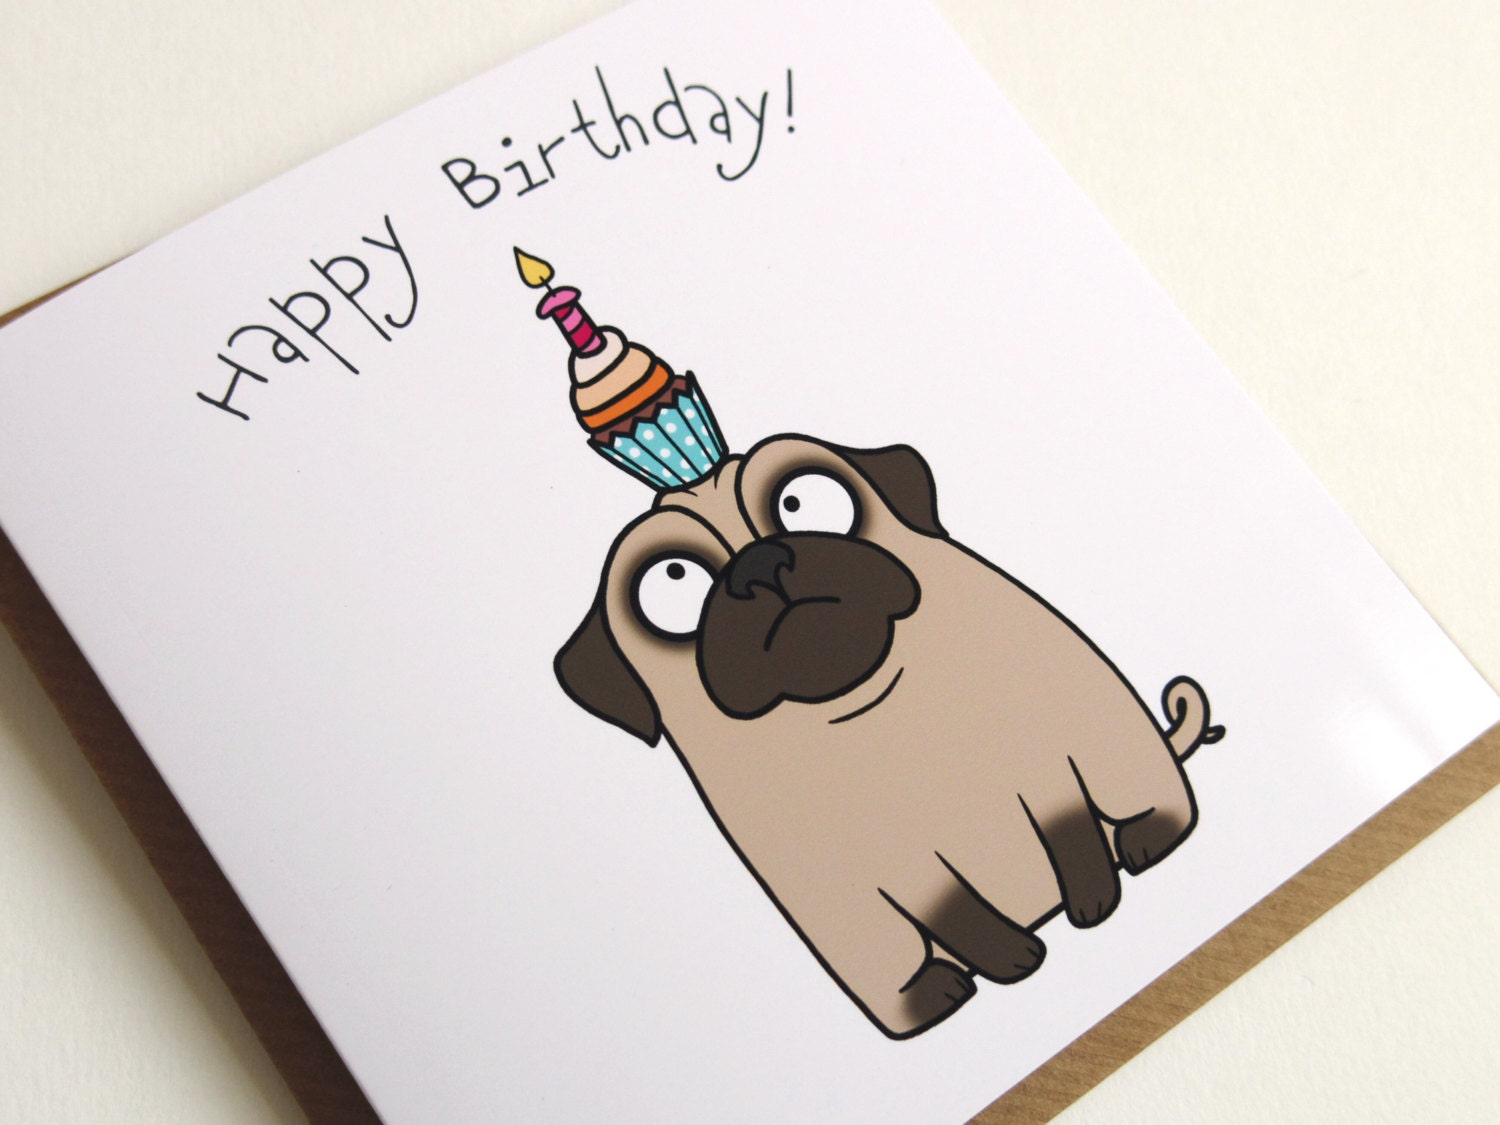 happy birthday confused pug cupcake greeting card, Birthday card